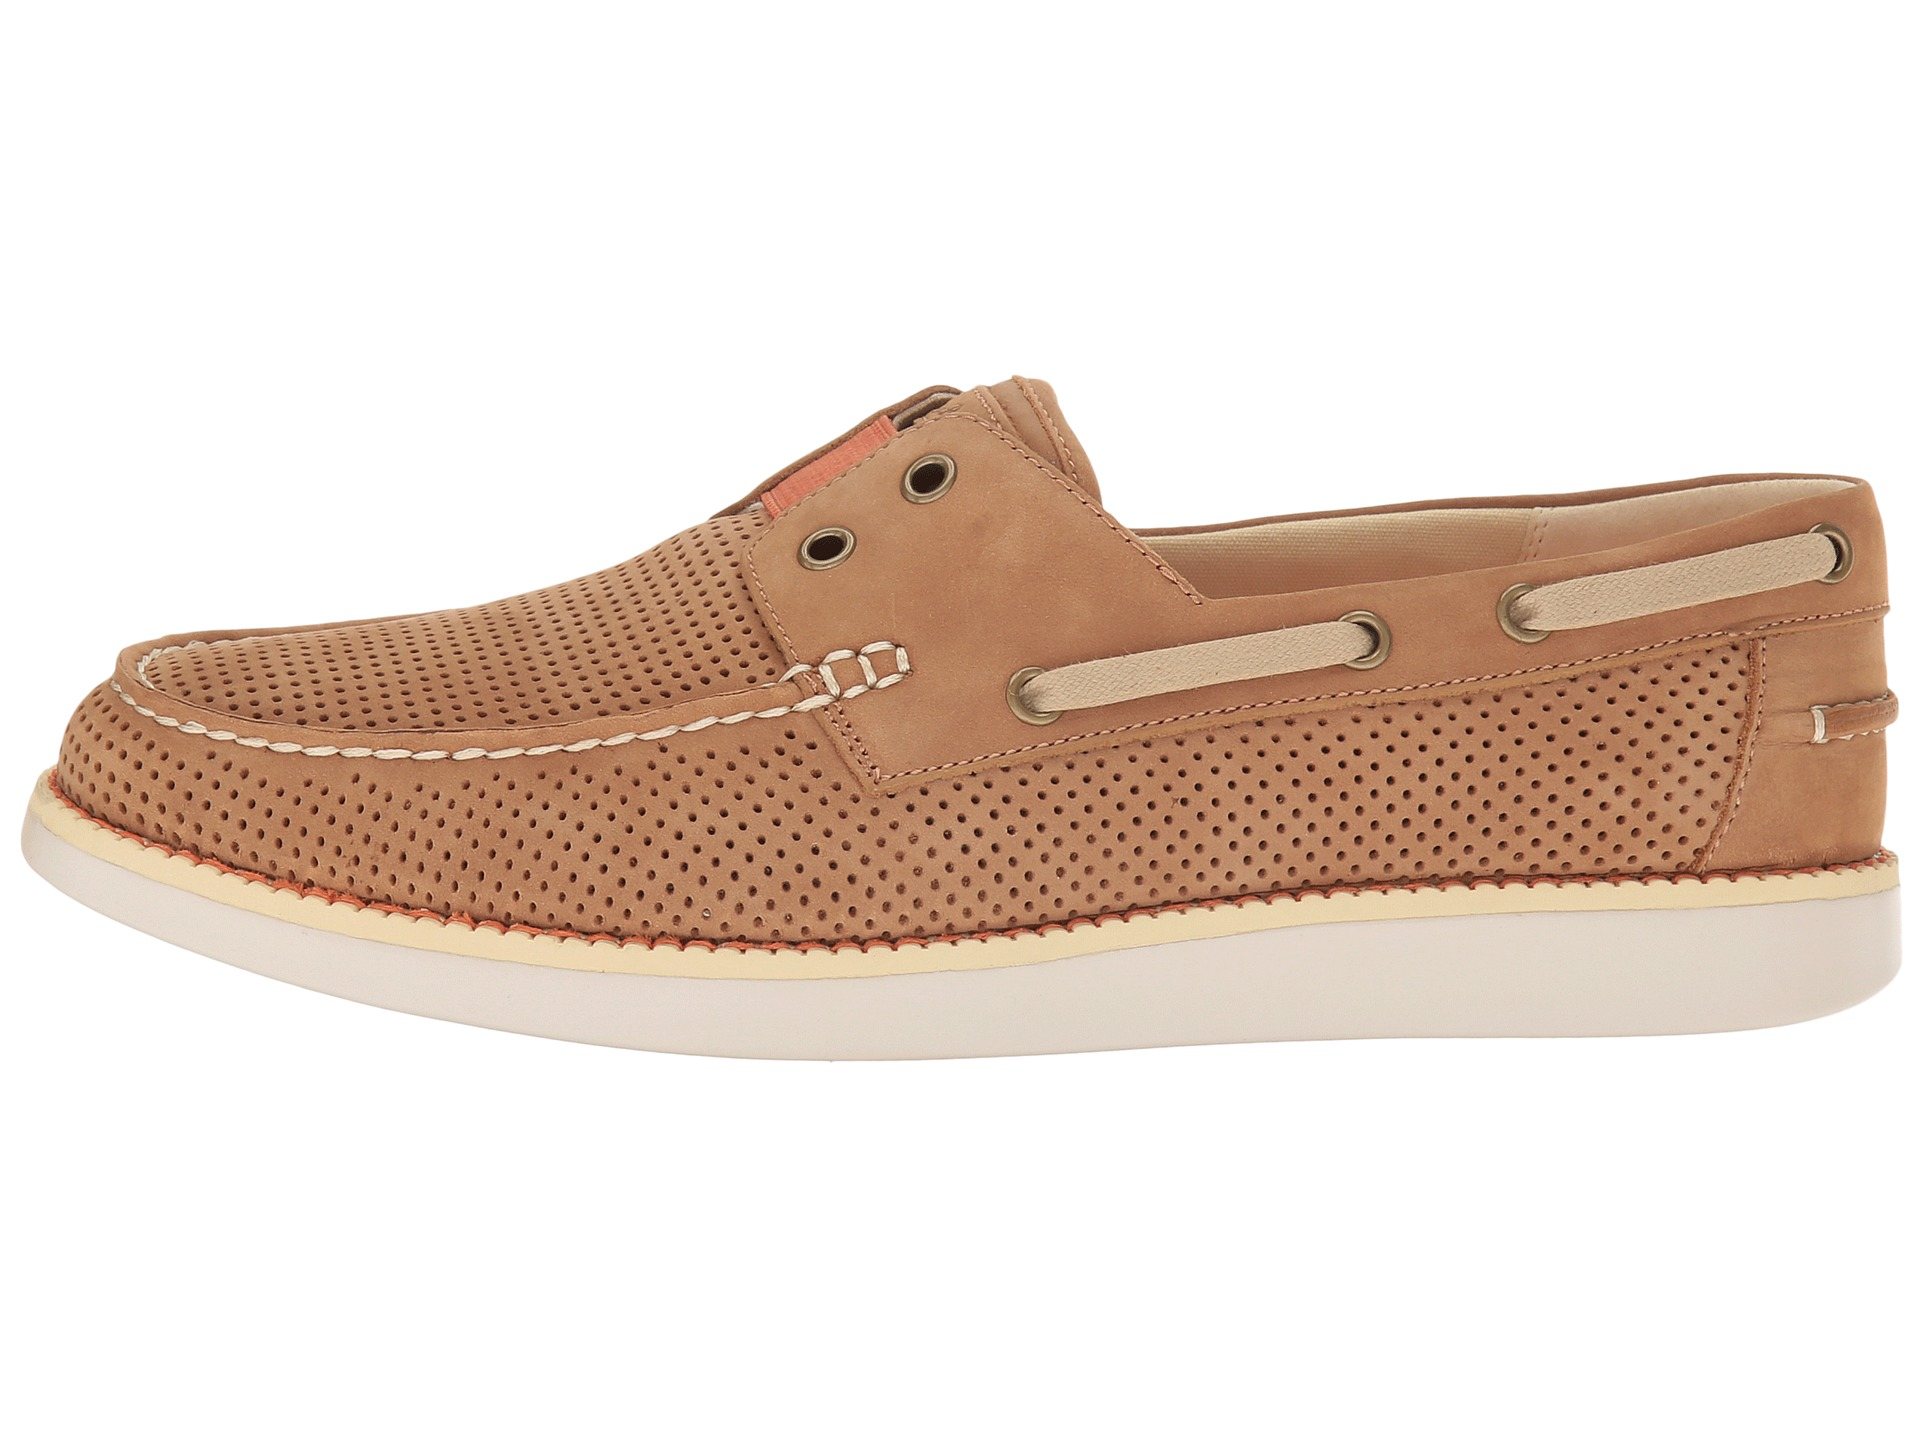 Relaxology Mahlue Nubuck Slip On Shoes